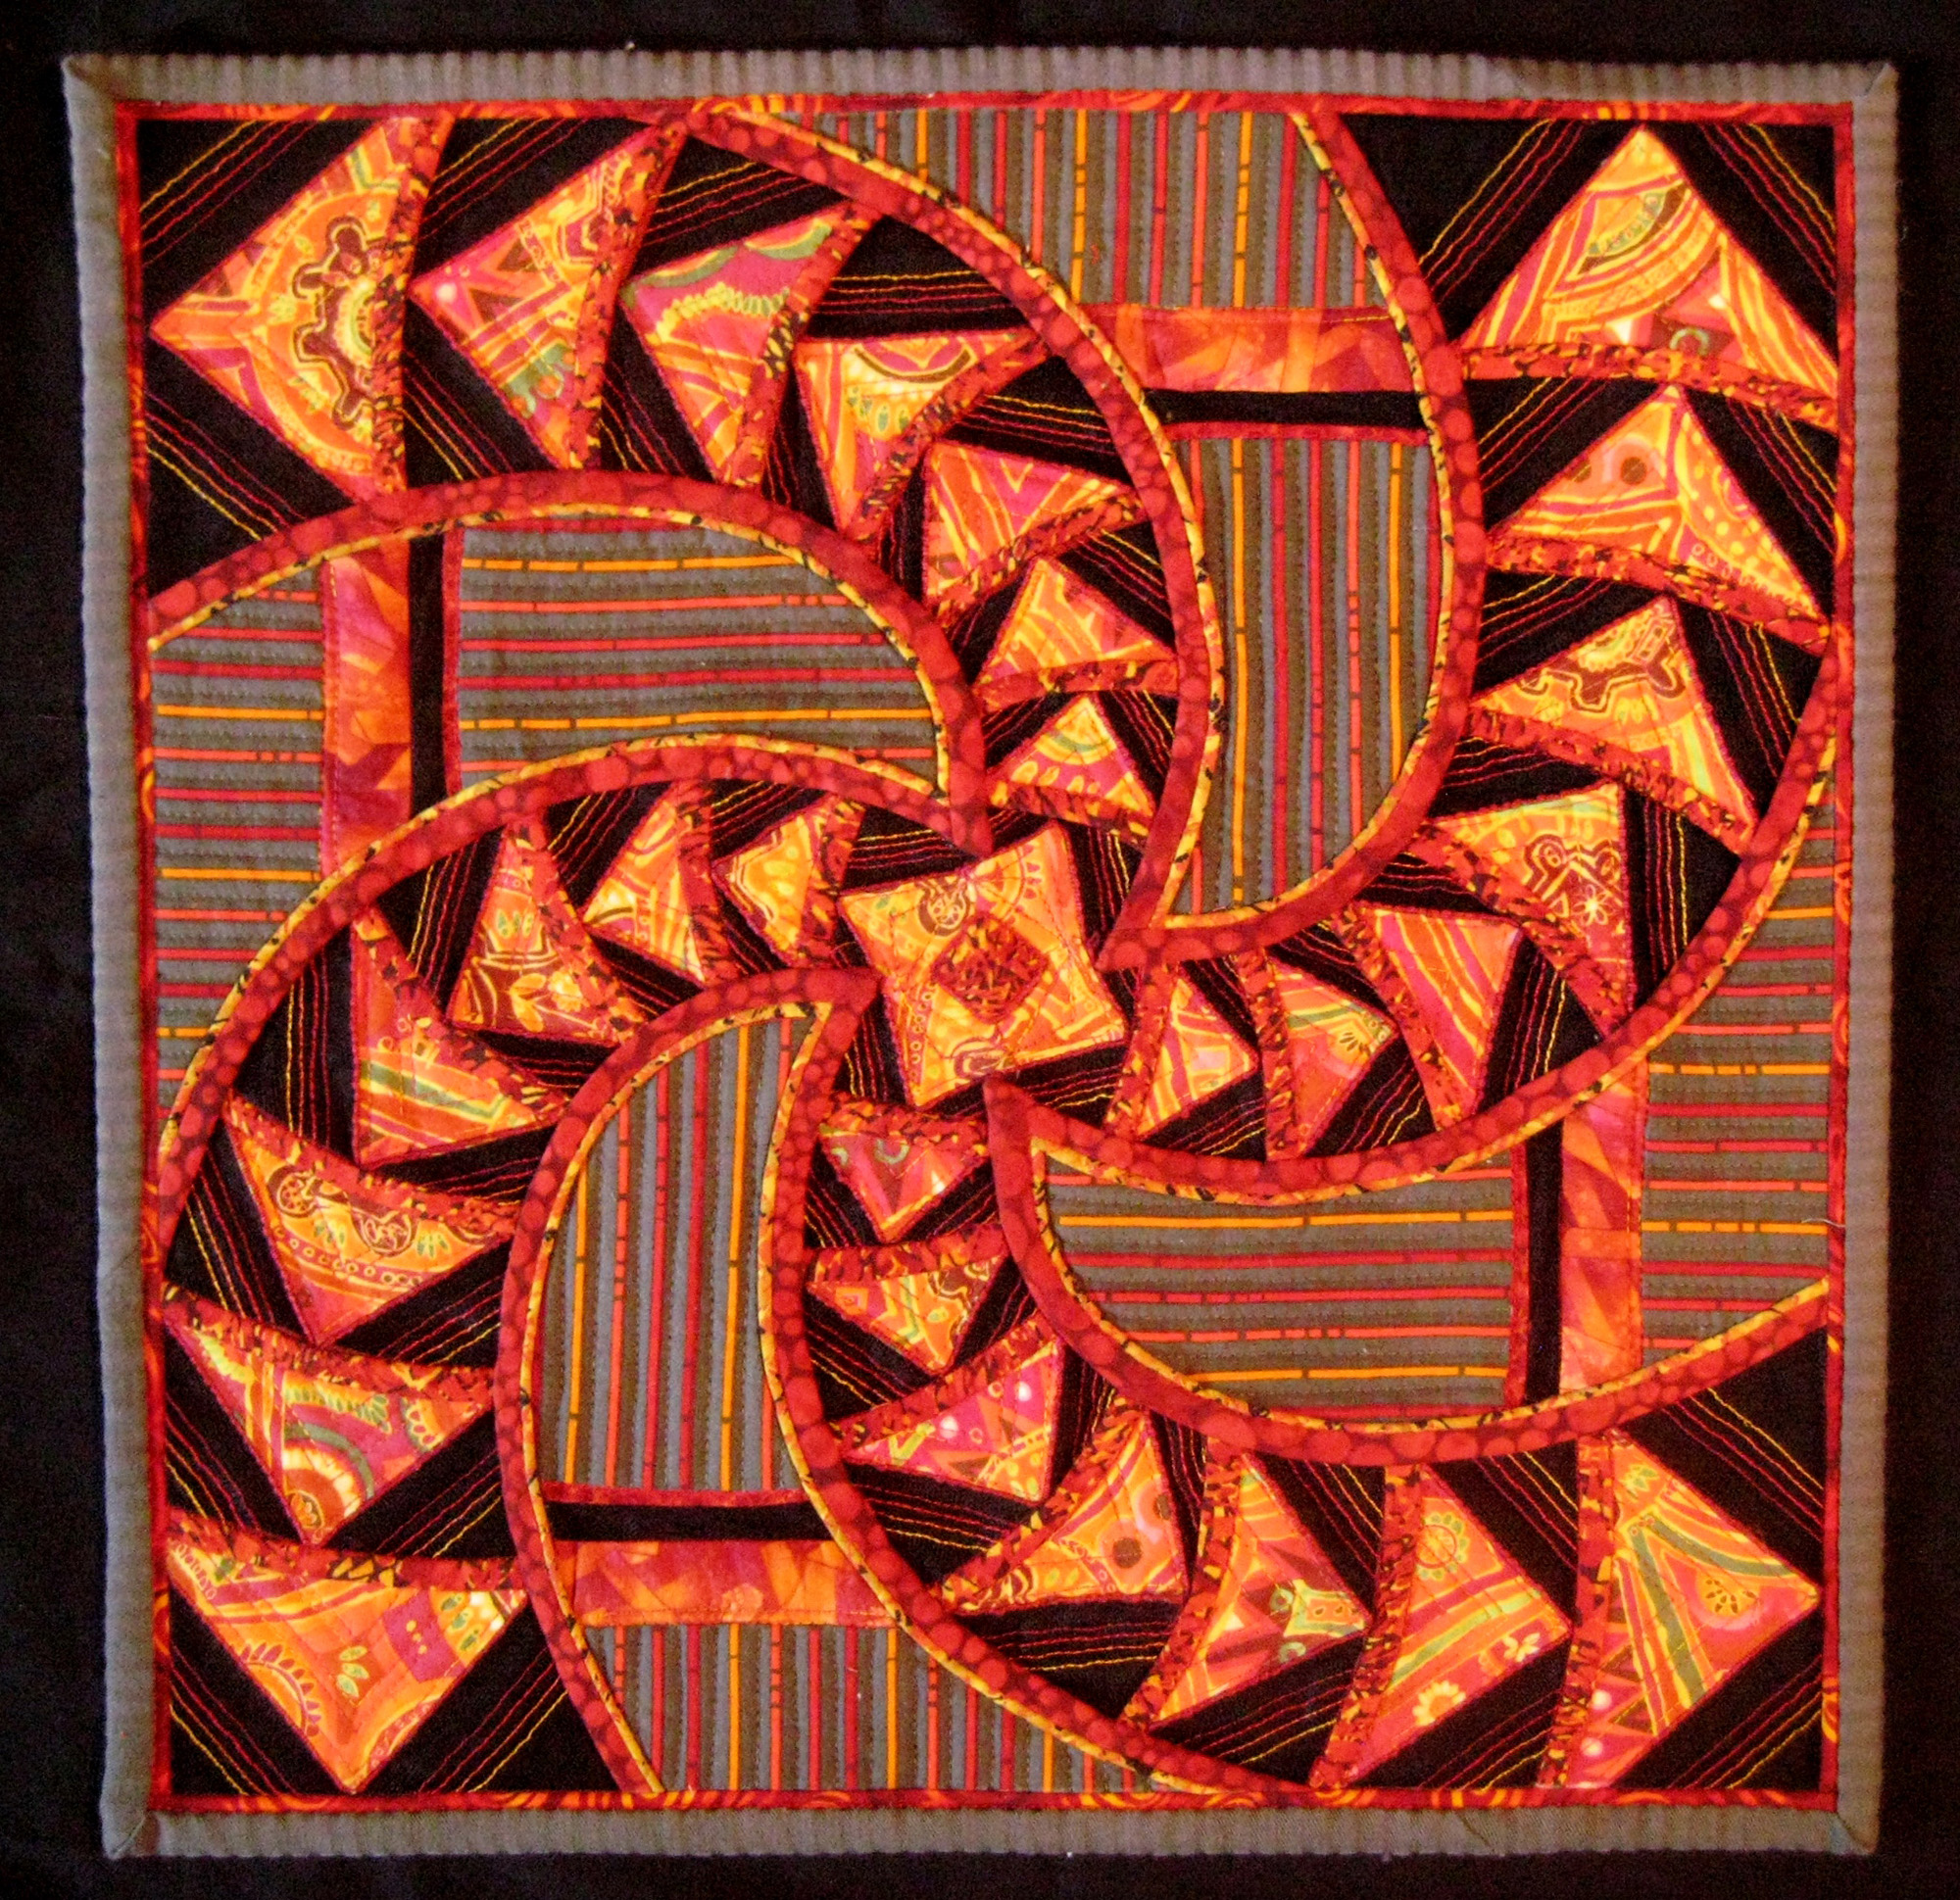 HONORABLE MENTION, <em>Solar Flare</em>, Michael Michalski, Brooklyn, NY